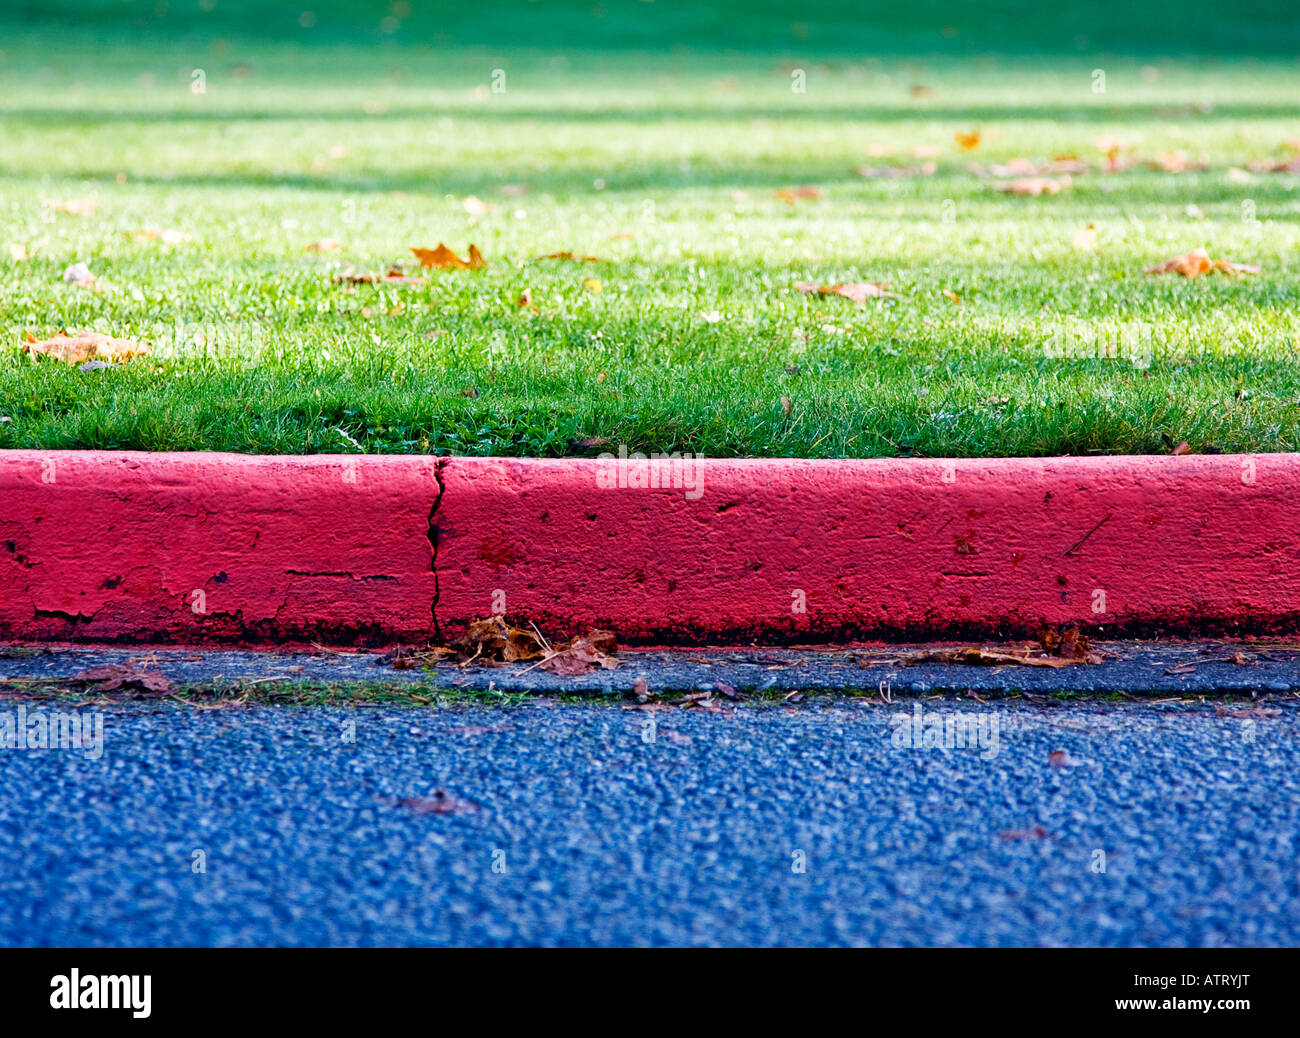 Parking lot curb - Stock Image